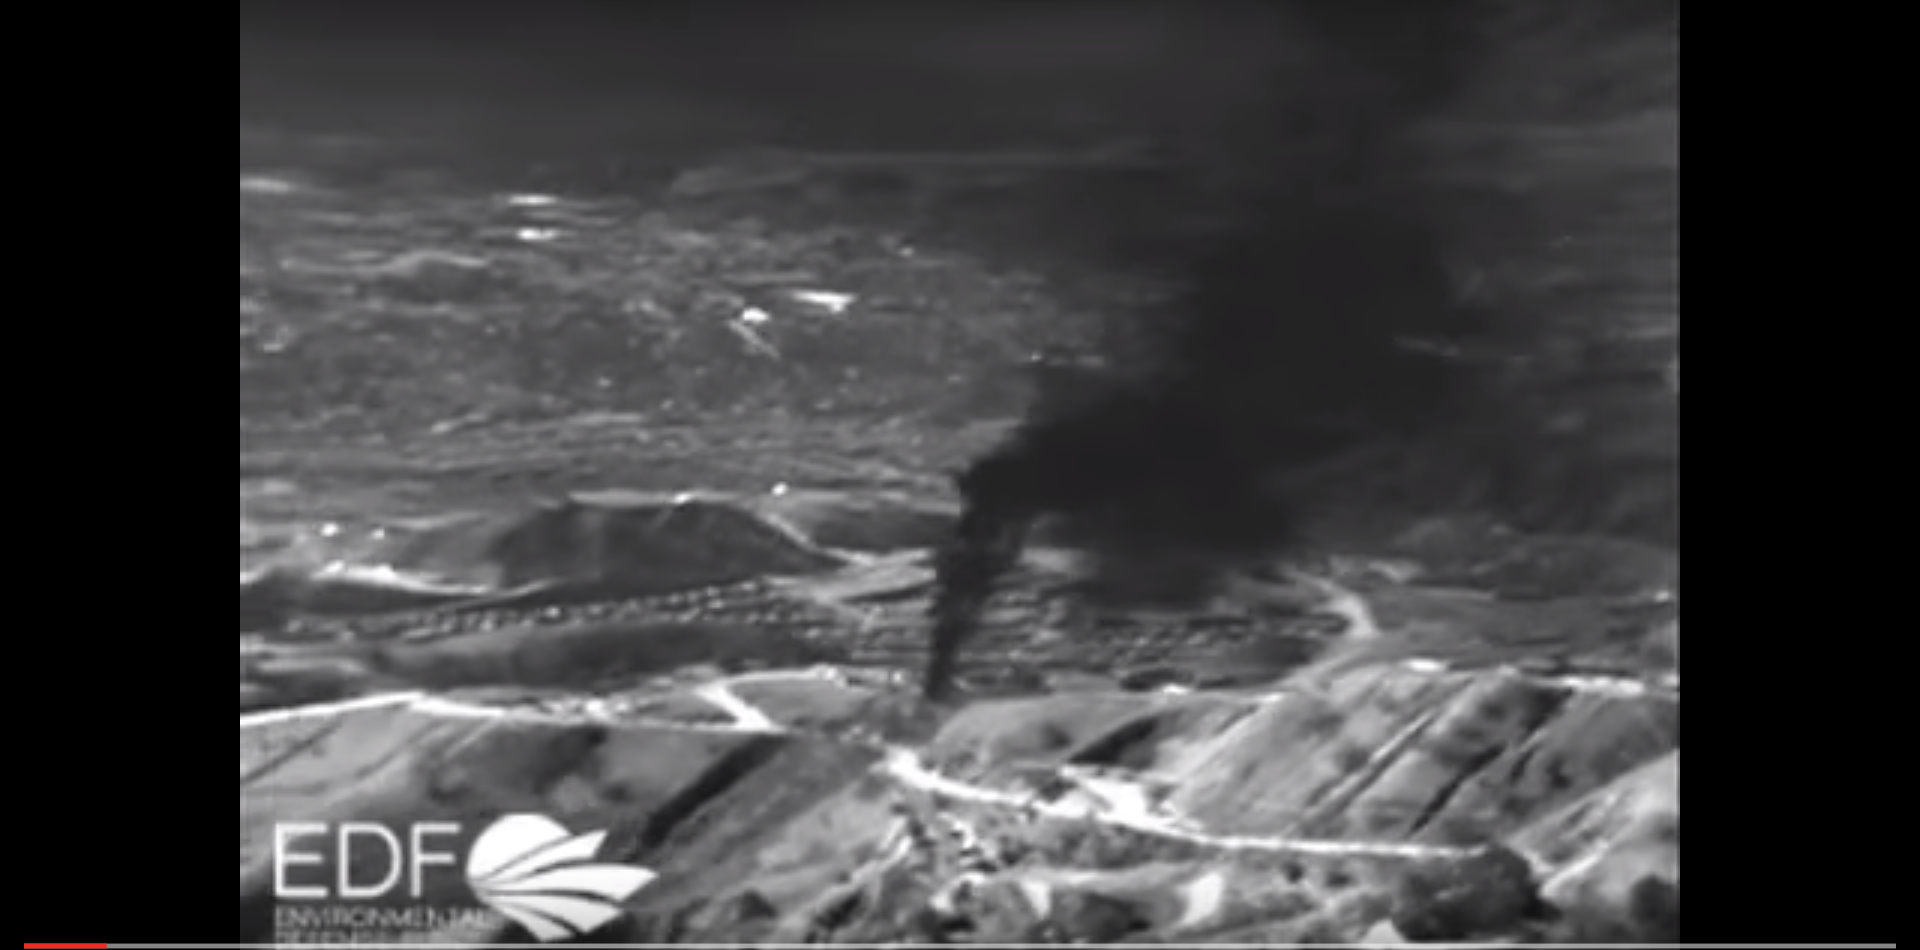 The SoCal gas leak in California.